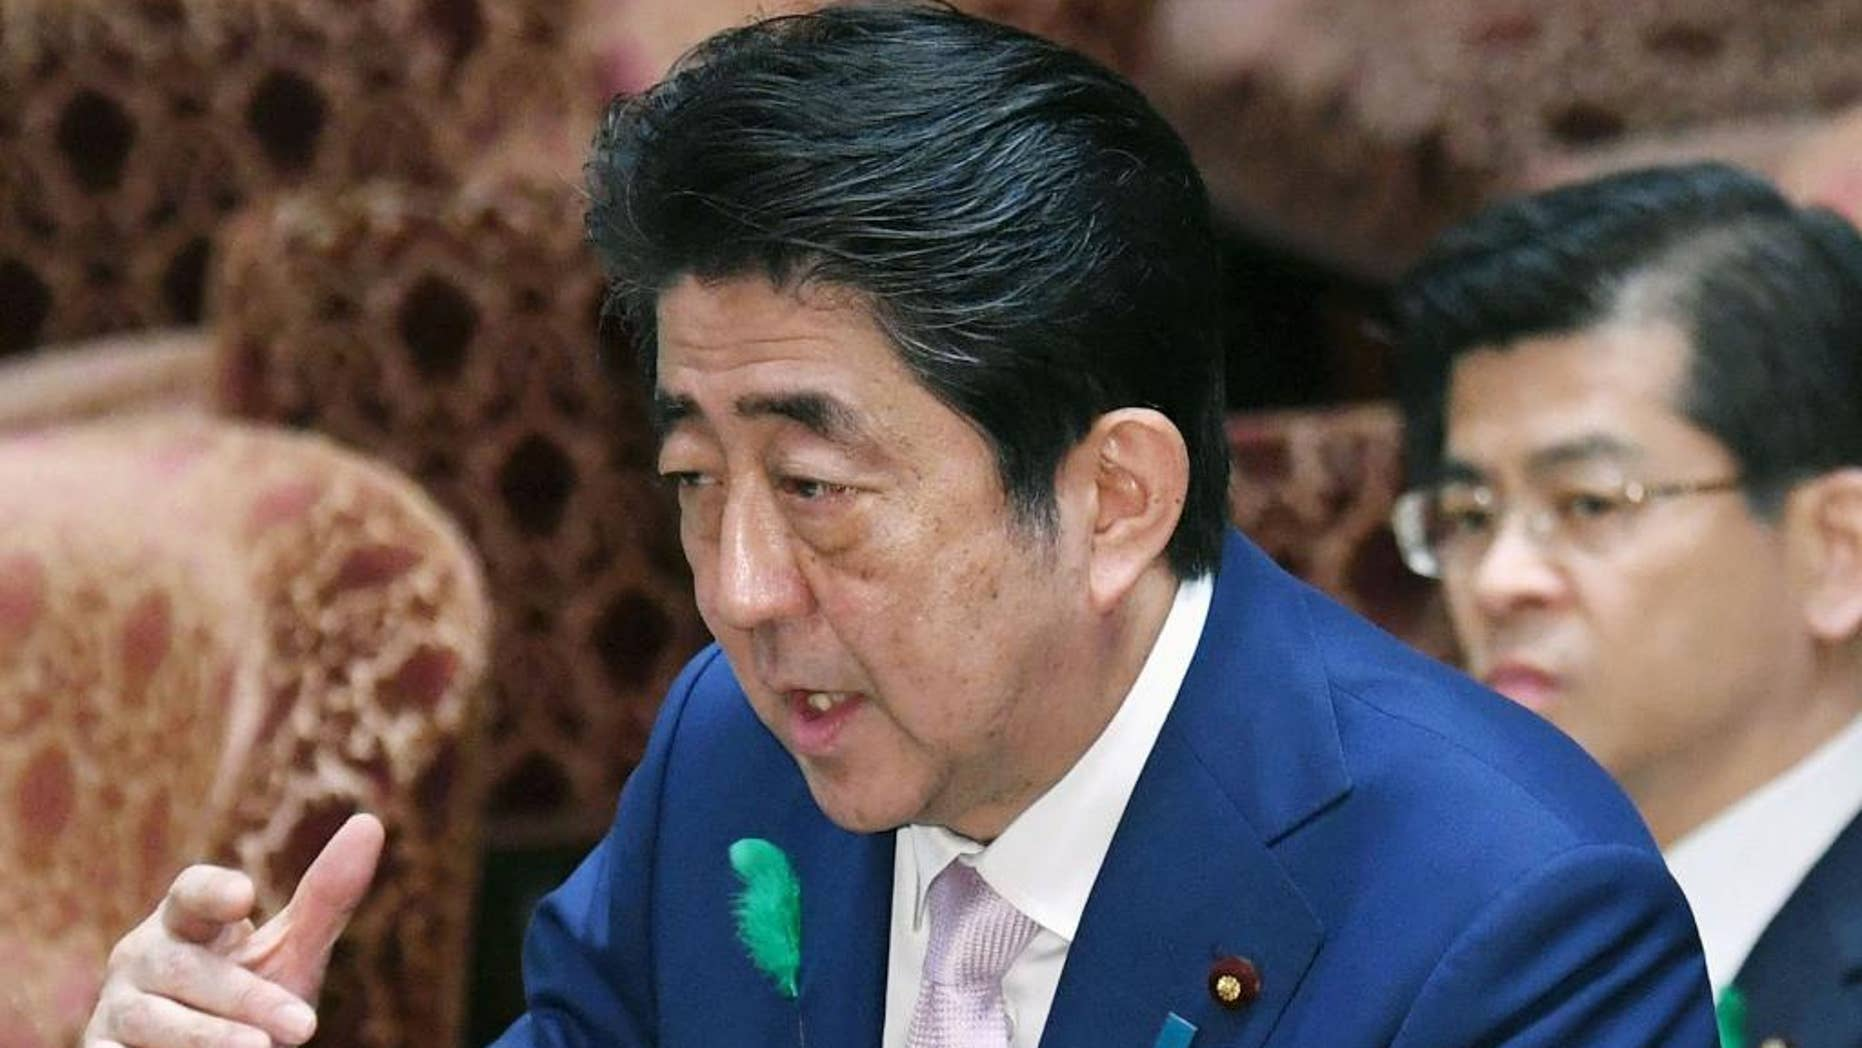 Japanese Prime Minister Shinzo Abe speaks during an Audit and Oversight of Administration Committee session at the lower house of Parliament in Tokyo Monday, April 17, 2017. Abe said Monday that Japan's government is drawing up contingency plans in case a crisis on the Korean Peninsula sends an influx of refugees to Japan. Abe told a parliamentary session that the government is formulating measures including protecting foreigners, landing procedures, building and operating shelters, and screening asylum seekers. (Yoshinobu Shimizu/Kyodo News via AP)